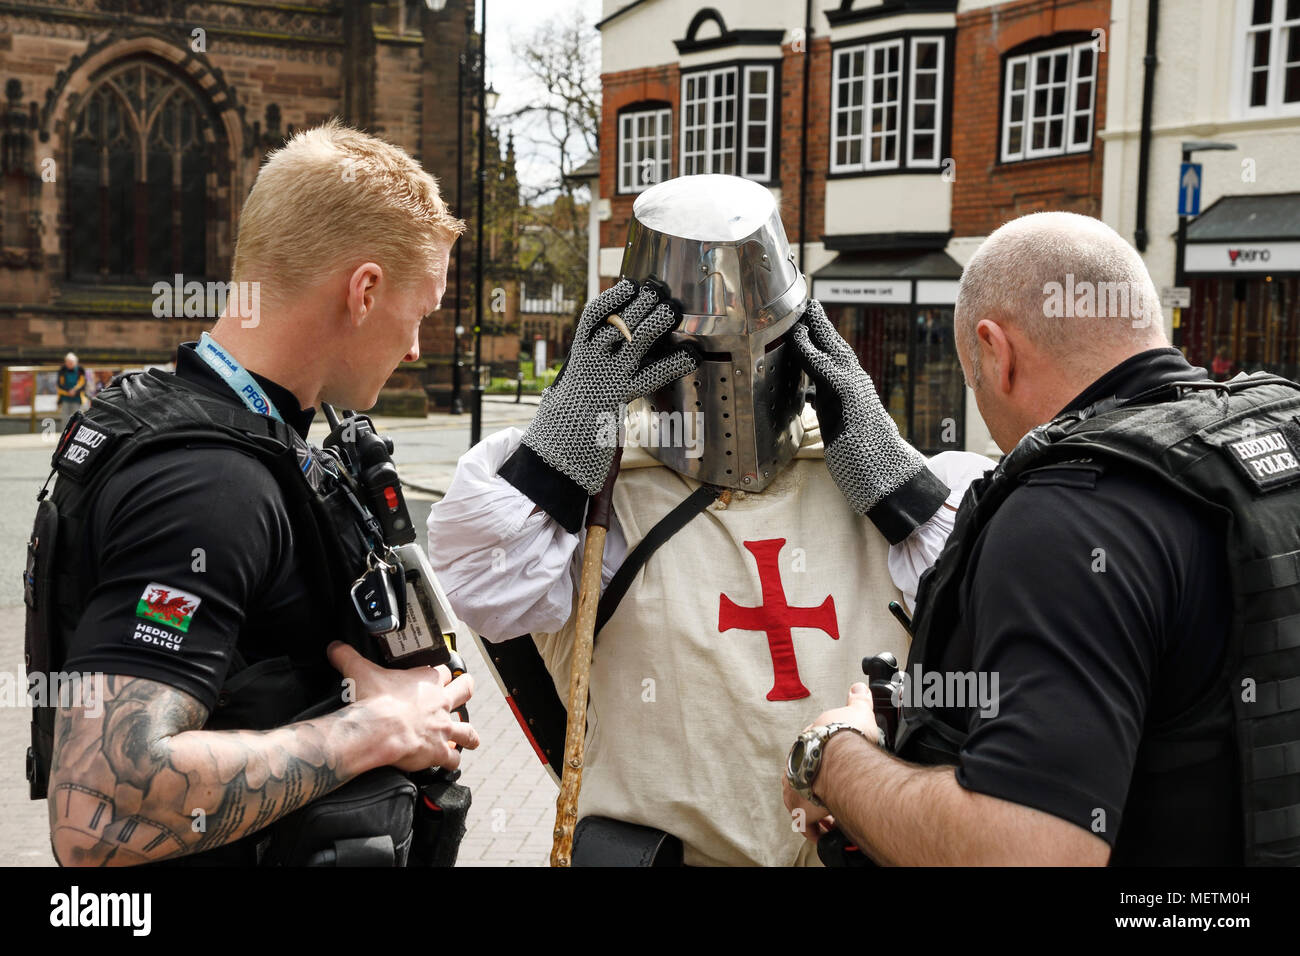 Chester, UK. 23rd April 2018. Local police talk to a performer in the St George's Day parade through the city centre. The parade includes street performance, theatre and music with local school children performing many supporting roles. Credit: Andrew Paterson/Alamy Live News - Stock Image